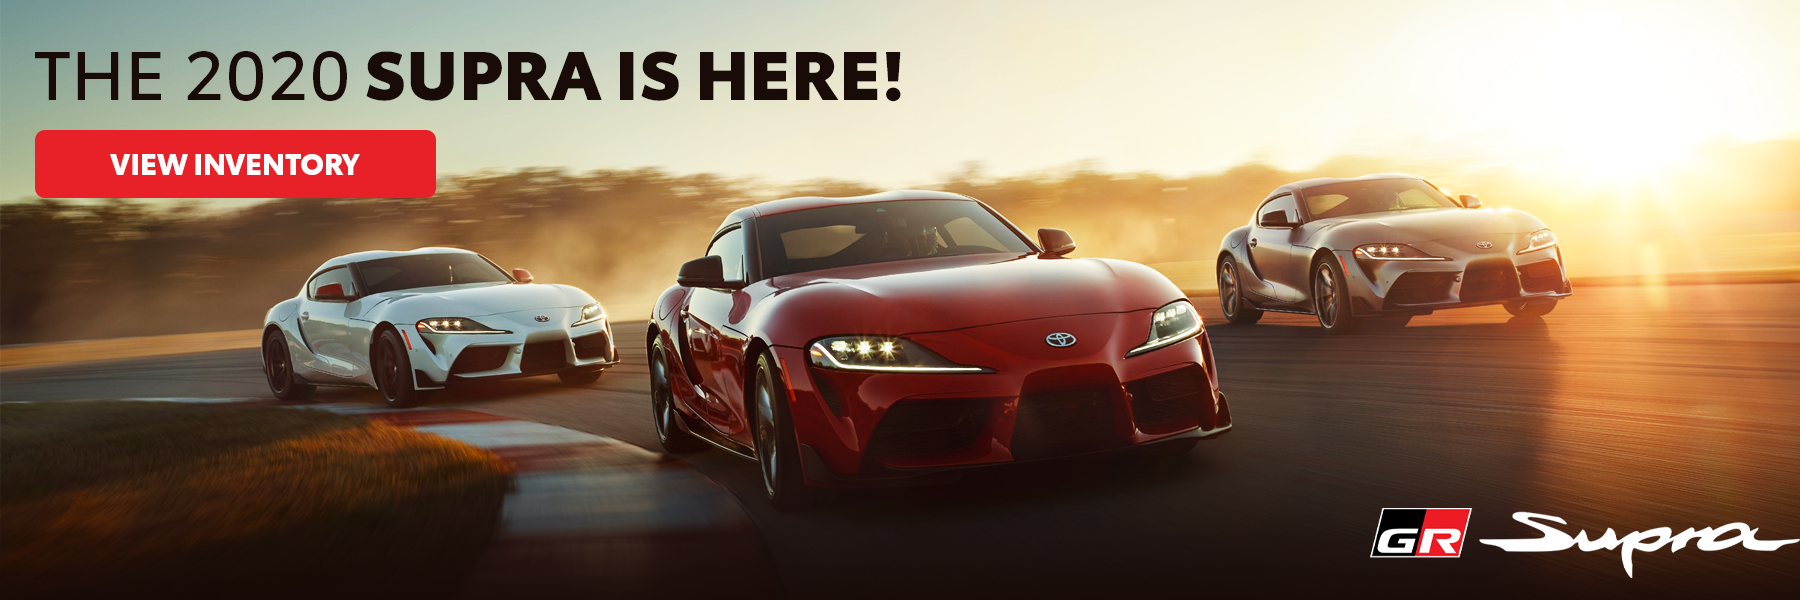 2020 Supra Now Available